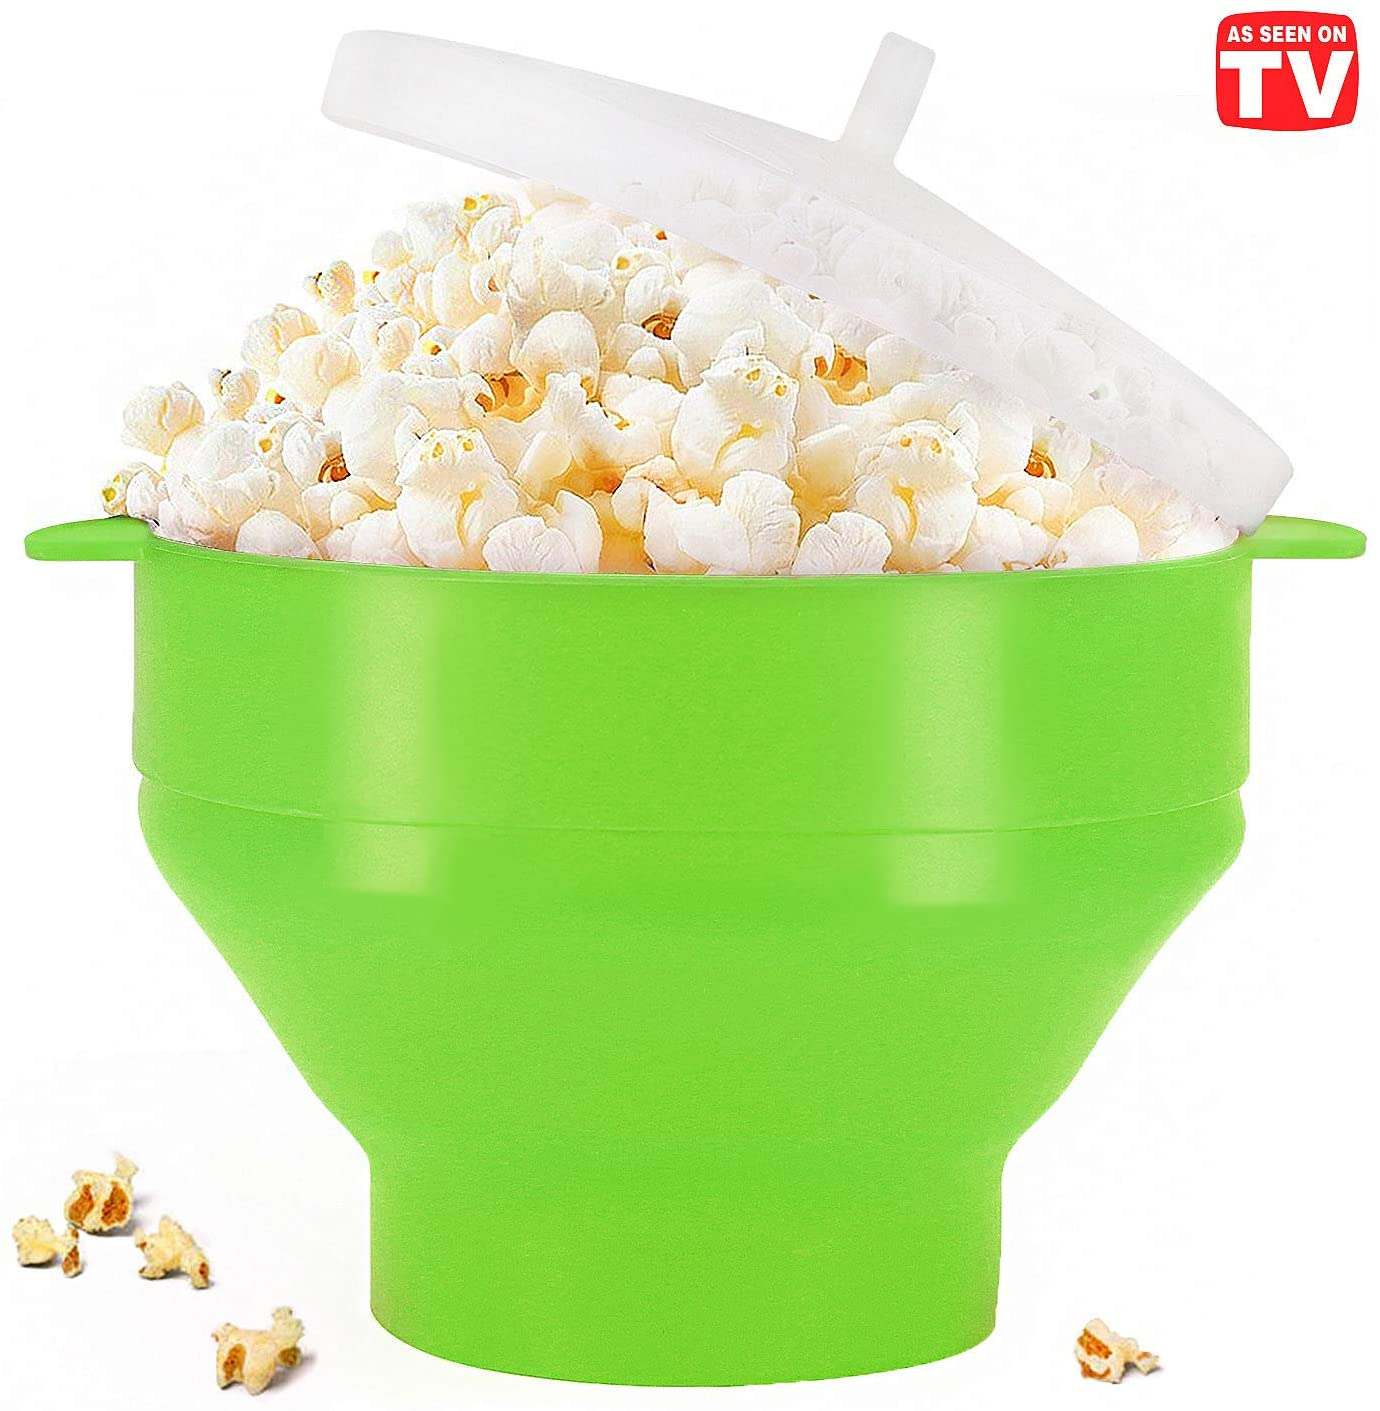 how to use joie microwave popcorn maker